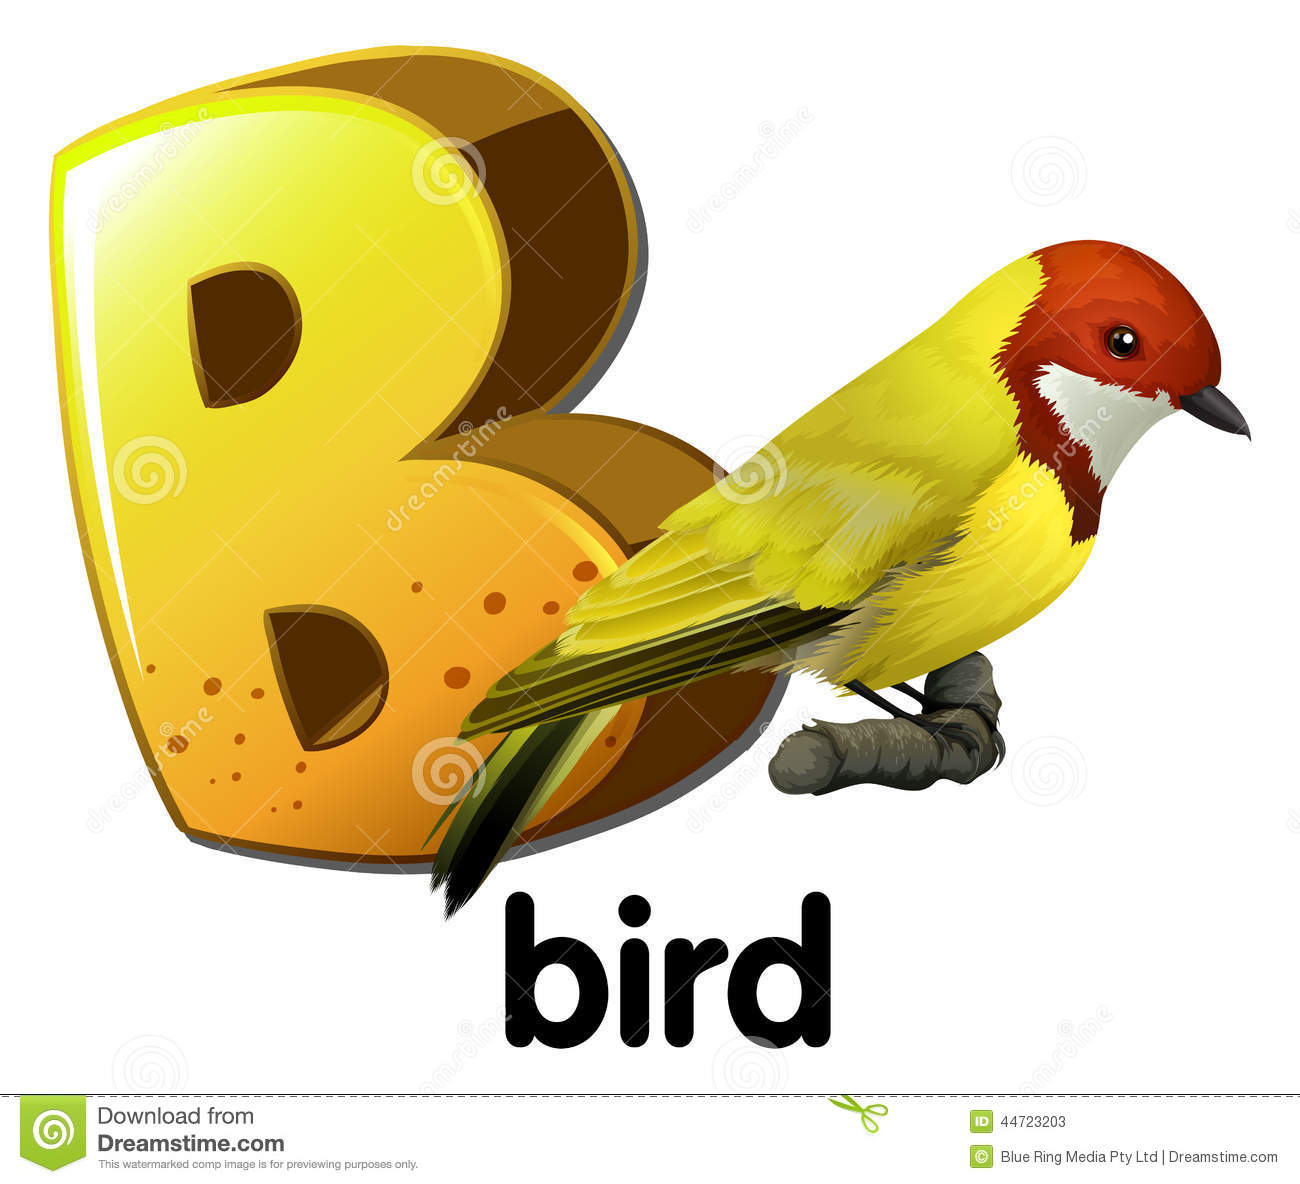 The Best Way To Write And Format A Business Letter Wikihow A Letter B For Bird Stock Vector Image 44723203